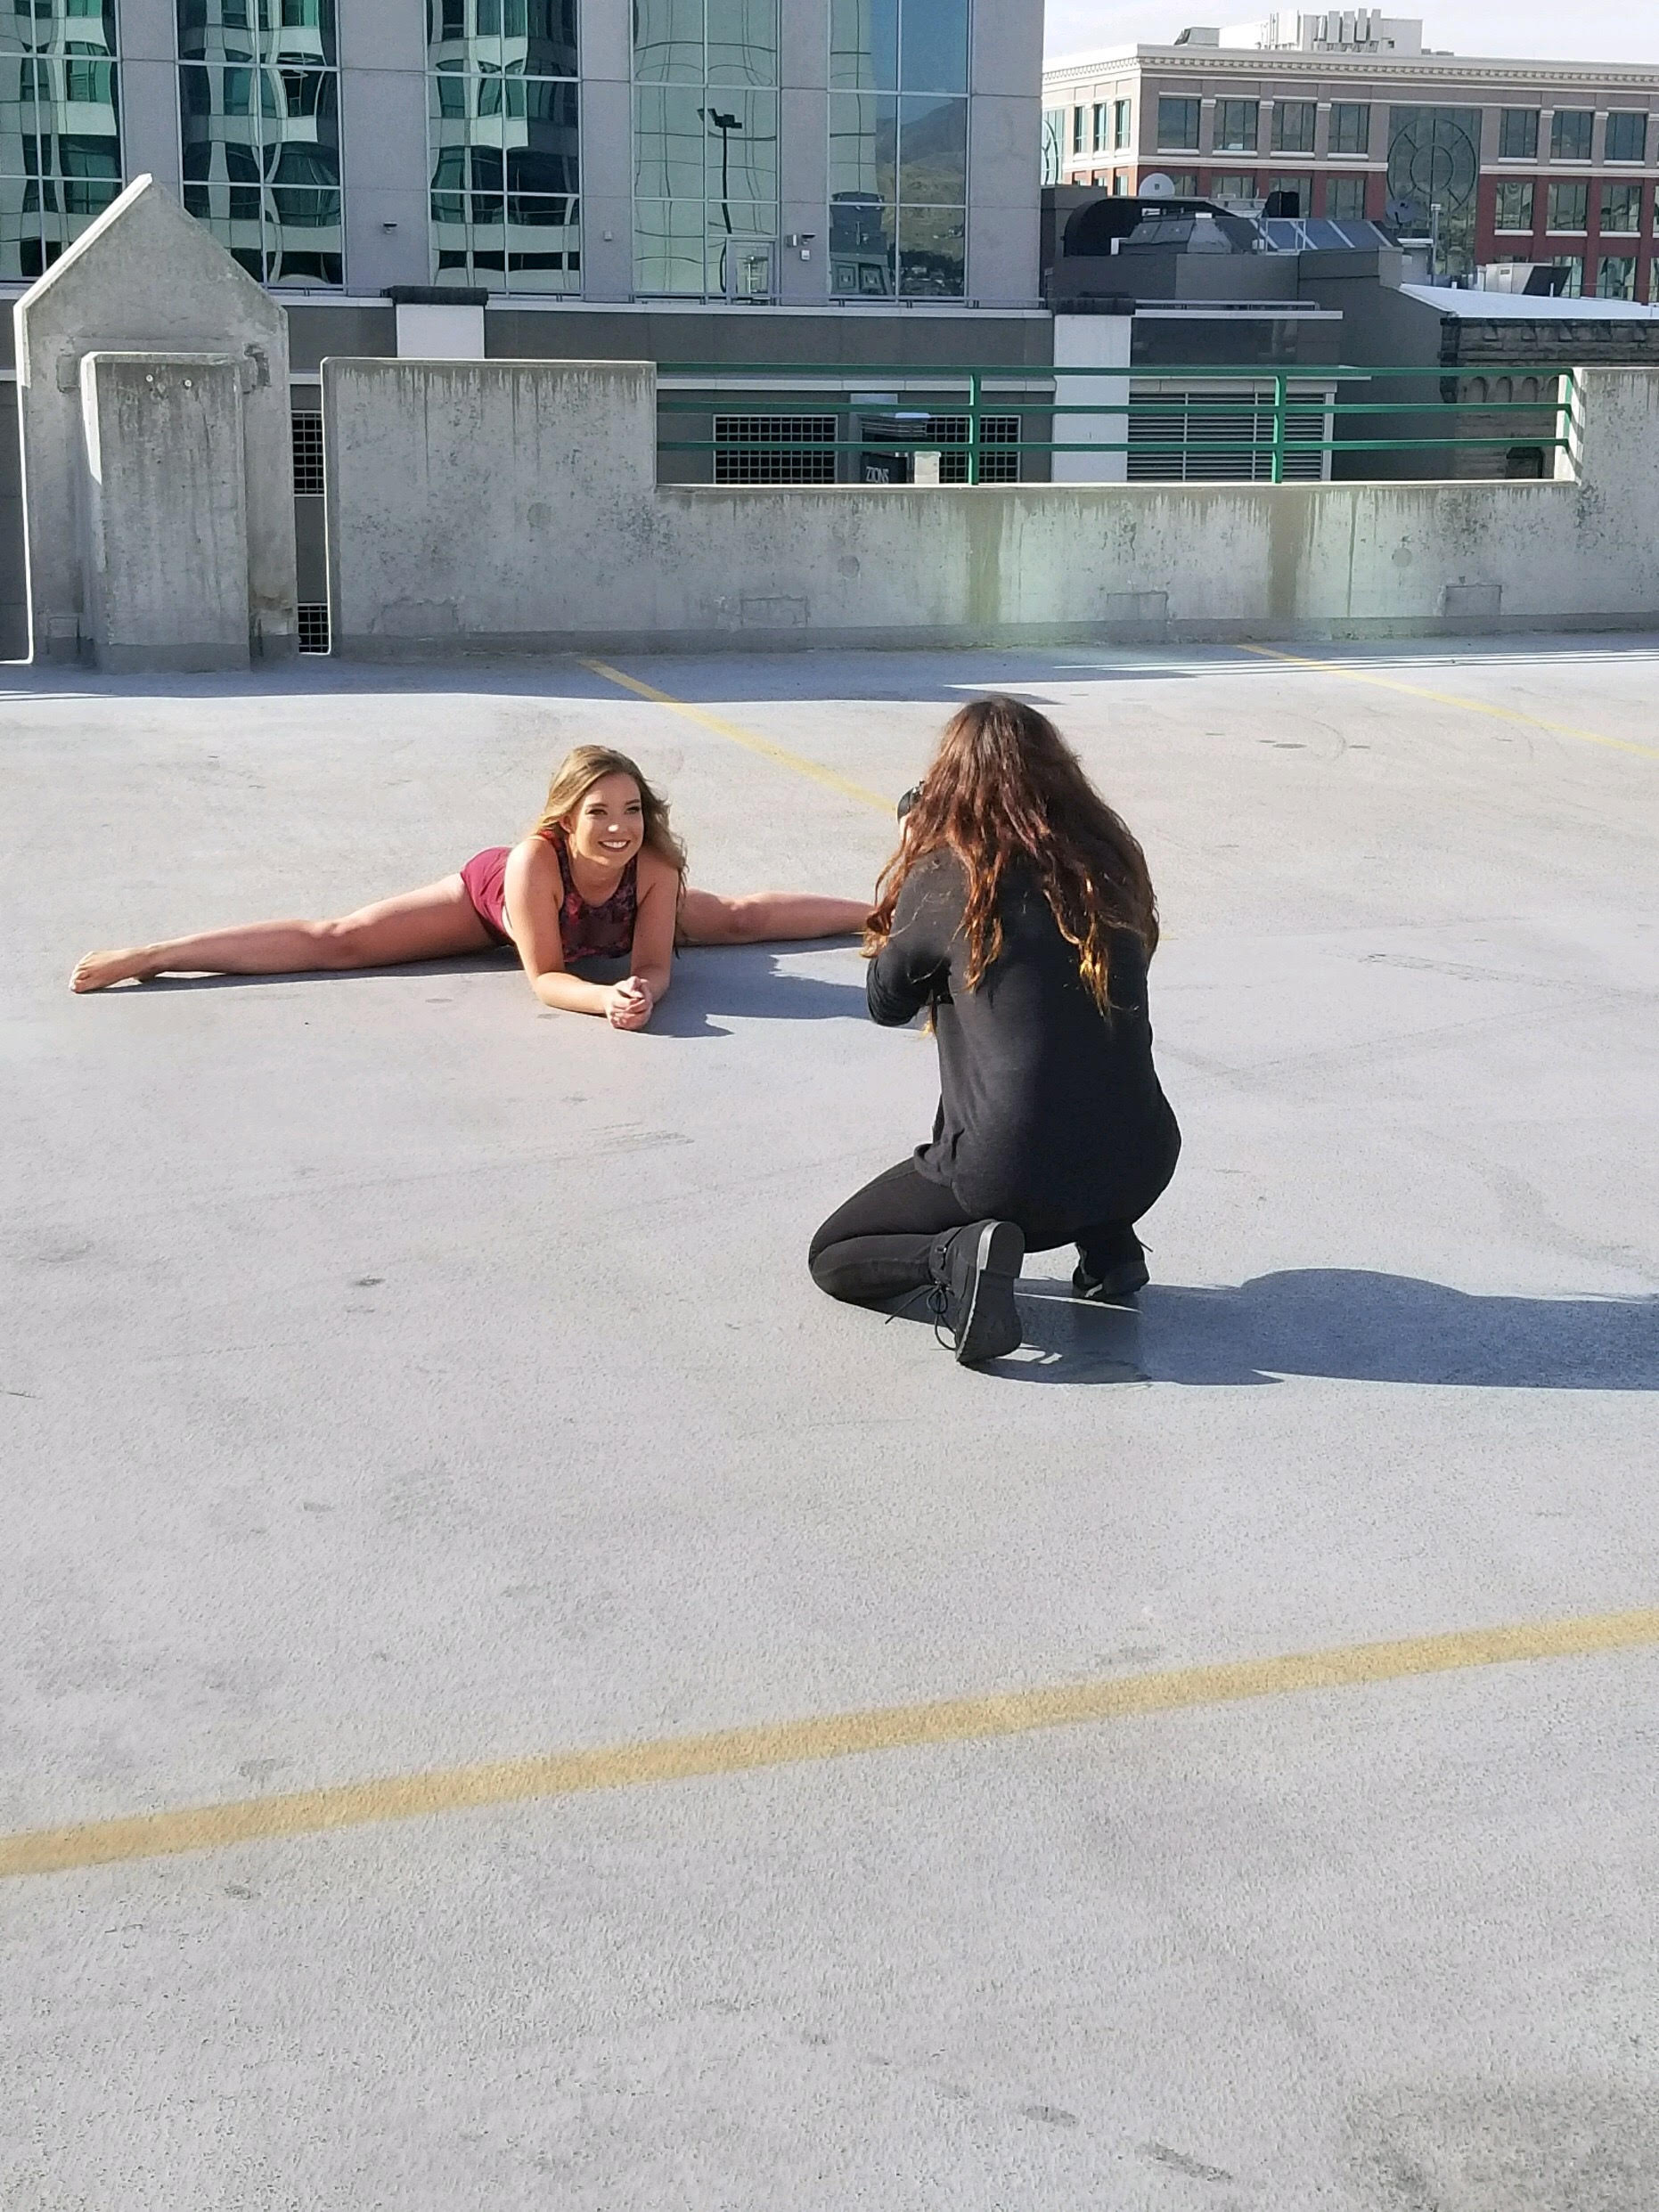 Makayla Madden Photography Boise Senior Photographer Senior Pictures Downtown Boise Mountain View Dancing Dance Inspiration Behind the Scenes